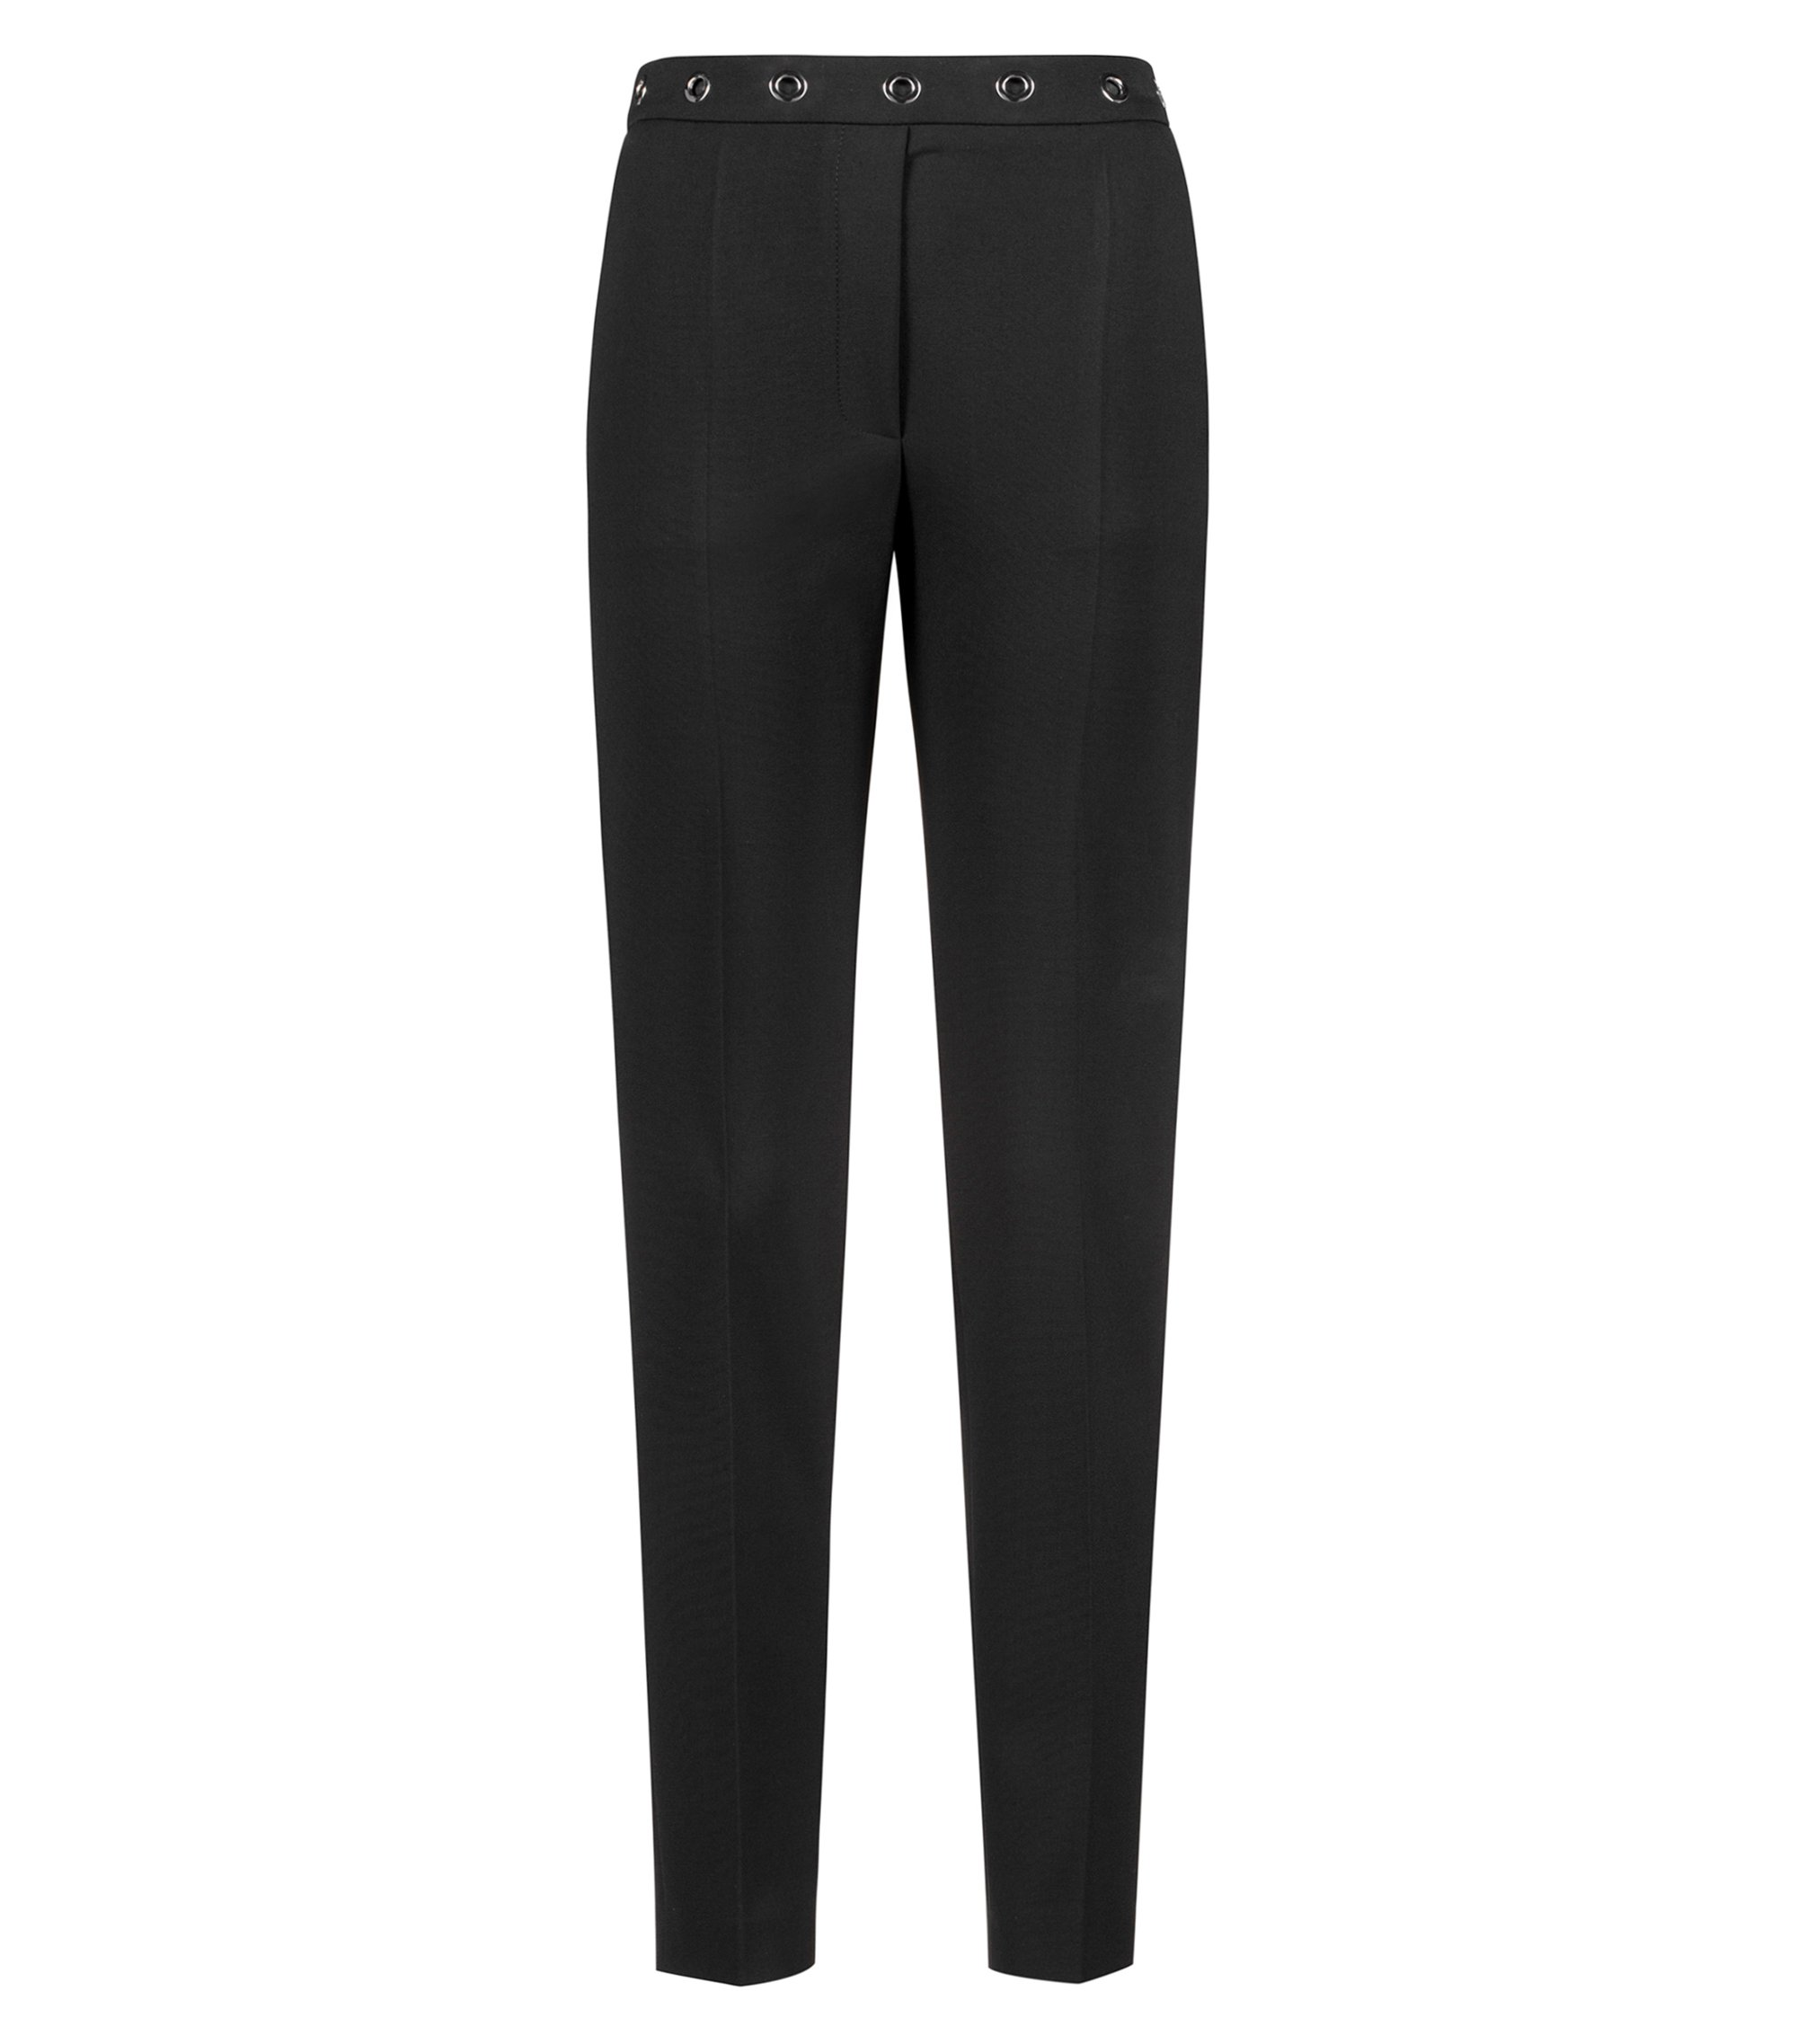 Slim-fit cigarette trousers with eyelet-detail waistband, Black